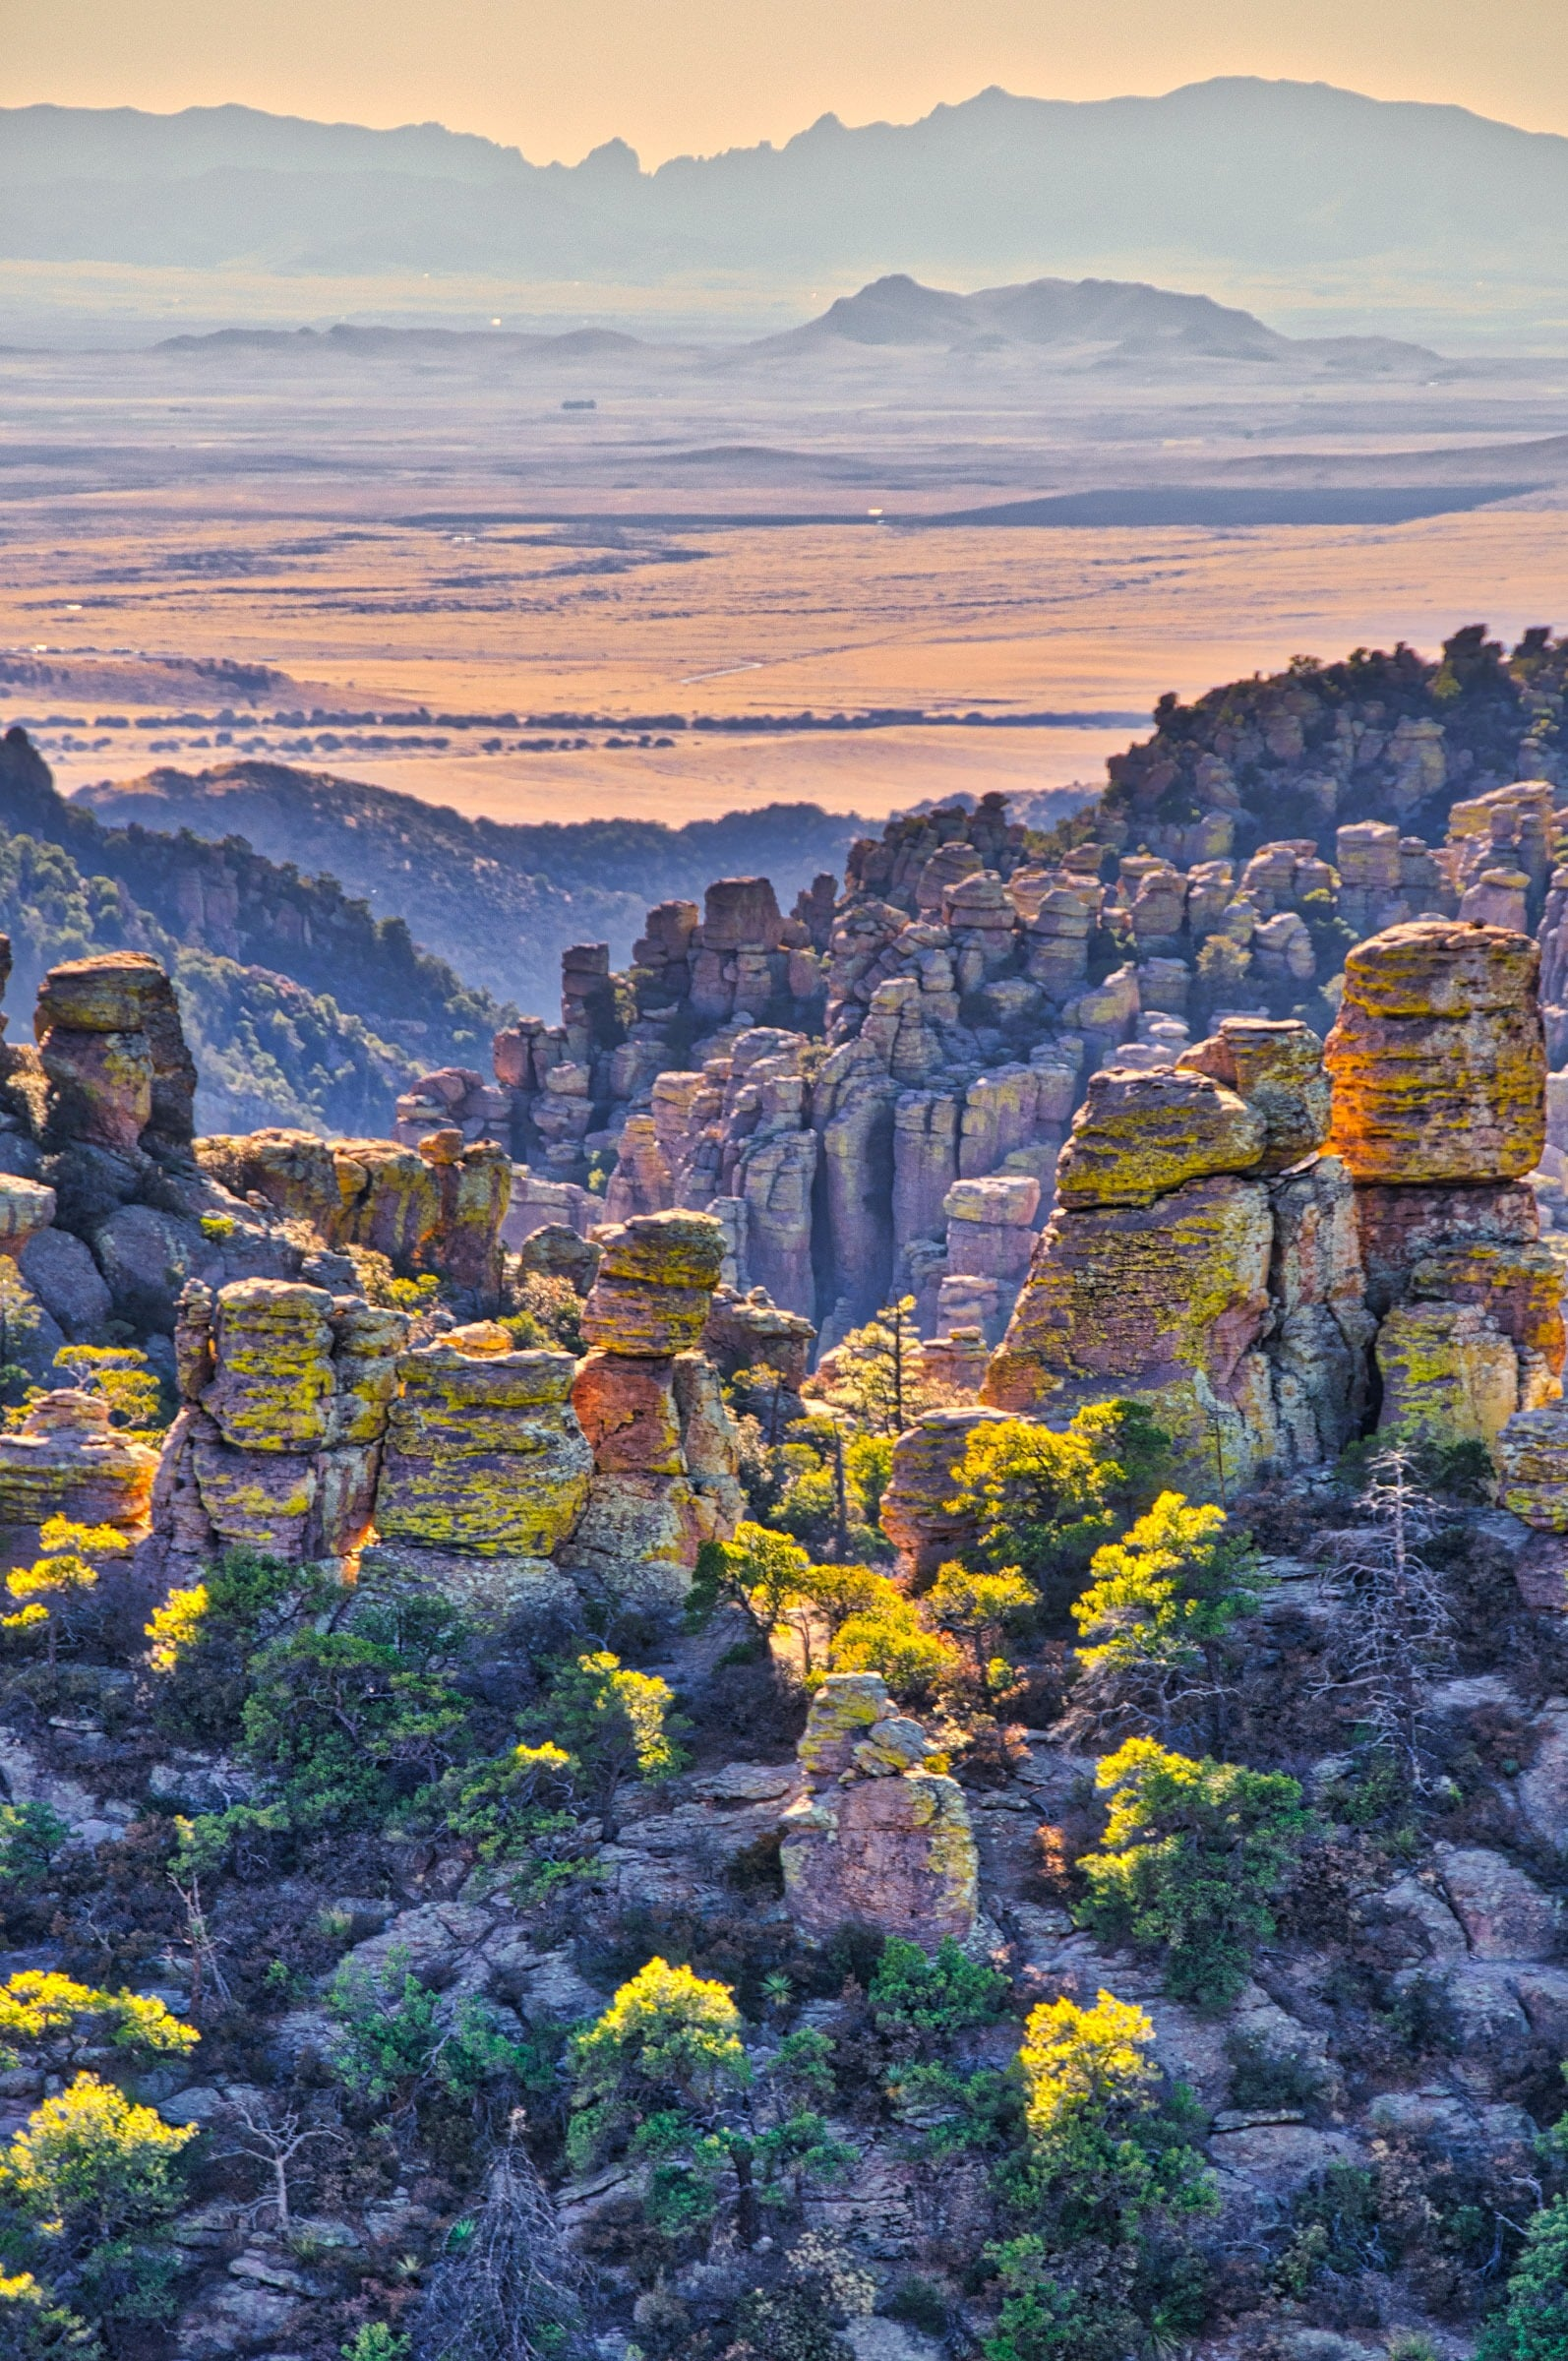 Sunset light illuminates the sides of rhyolite pinnacles, as well as the vallies beyon, in Chiricahua National Monument in Arizona.